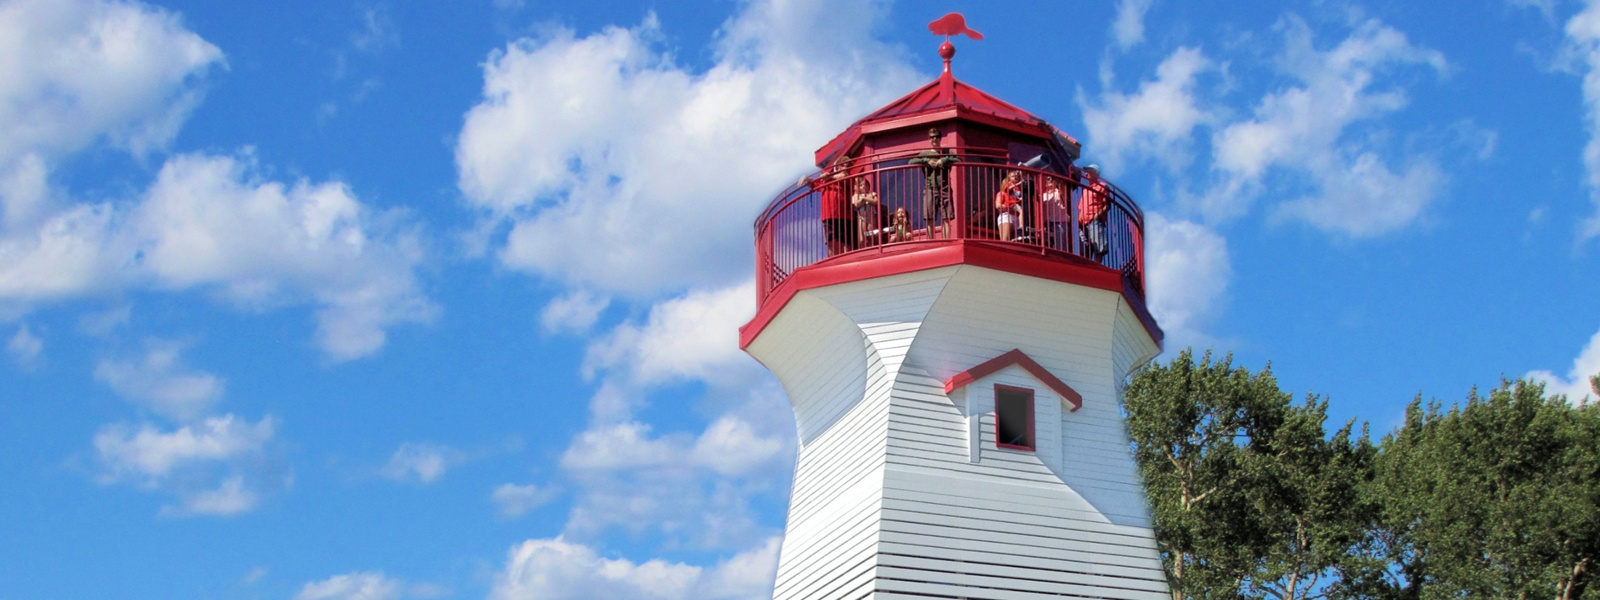 Slideshow: Terrace Bay Lighthouse